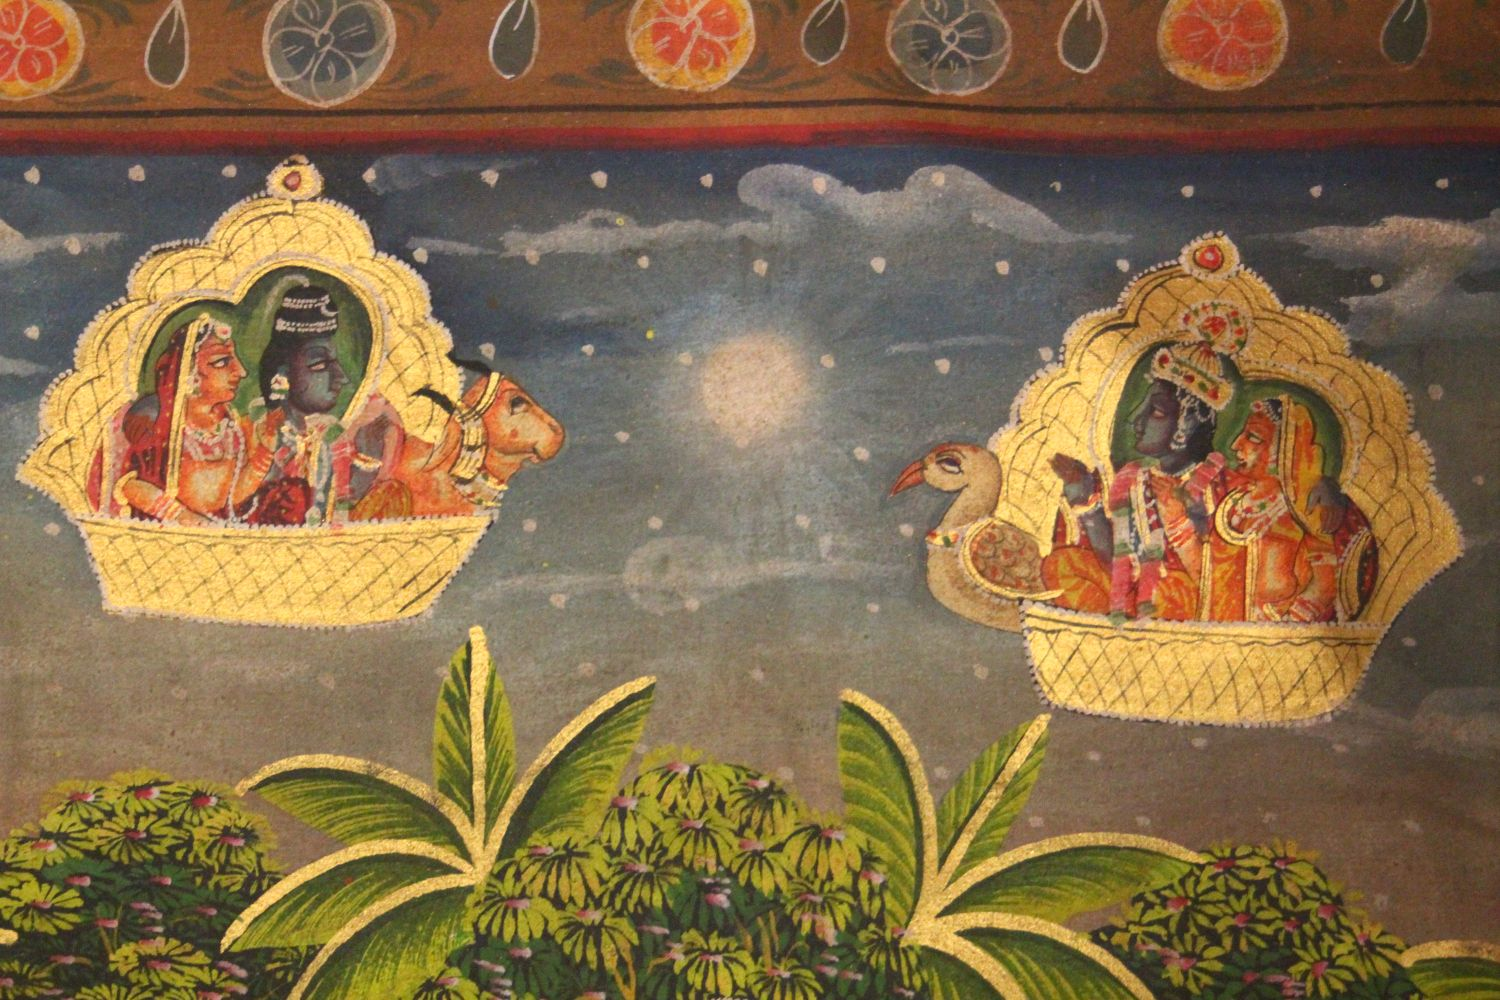 Lot 57 - A VERY GOOD QUALITY 19TH CENTURY INDIAN COTTON / TEXTILE PICHWAI PAINTING, the textile depicting